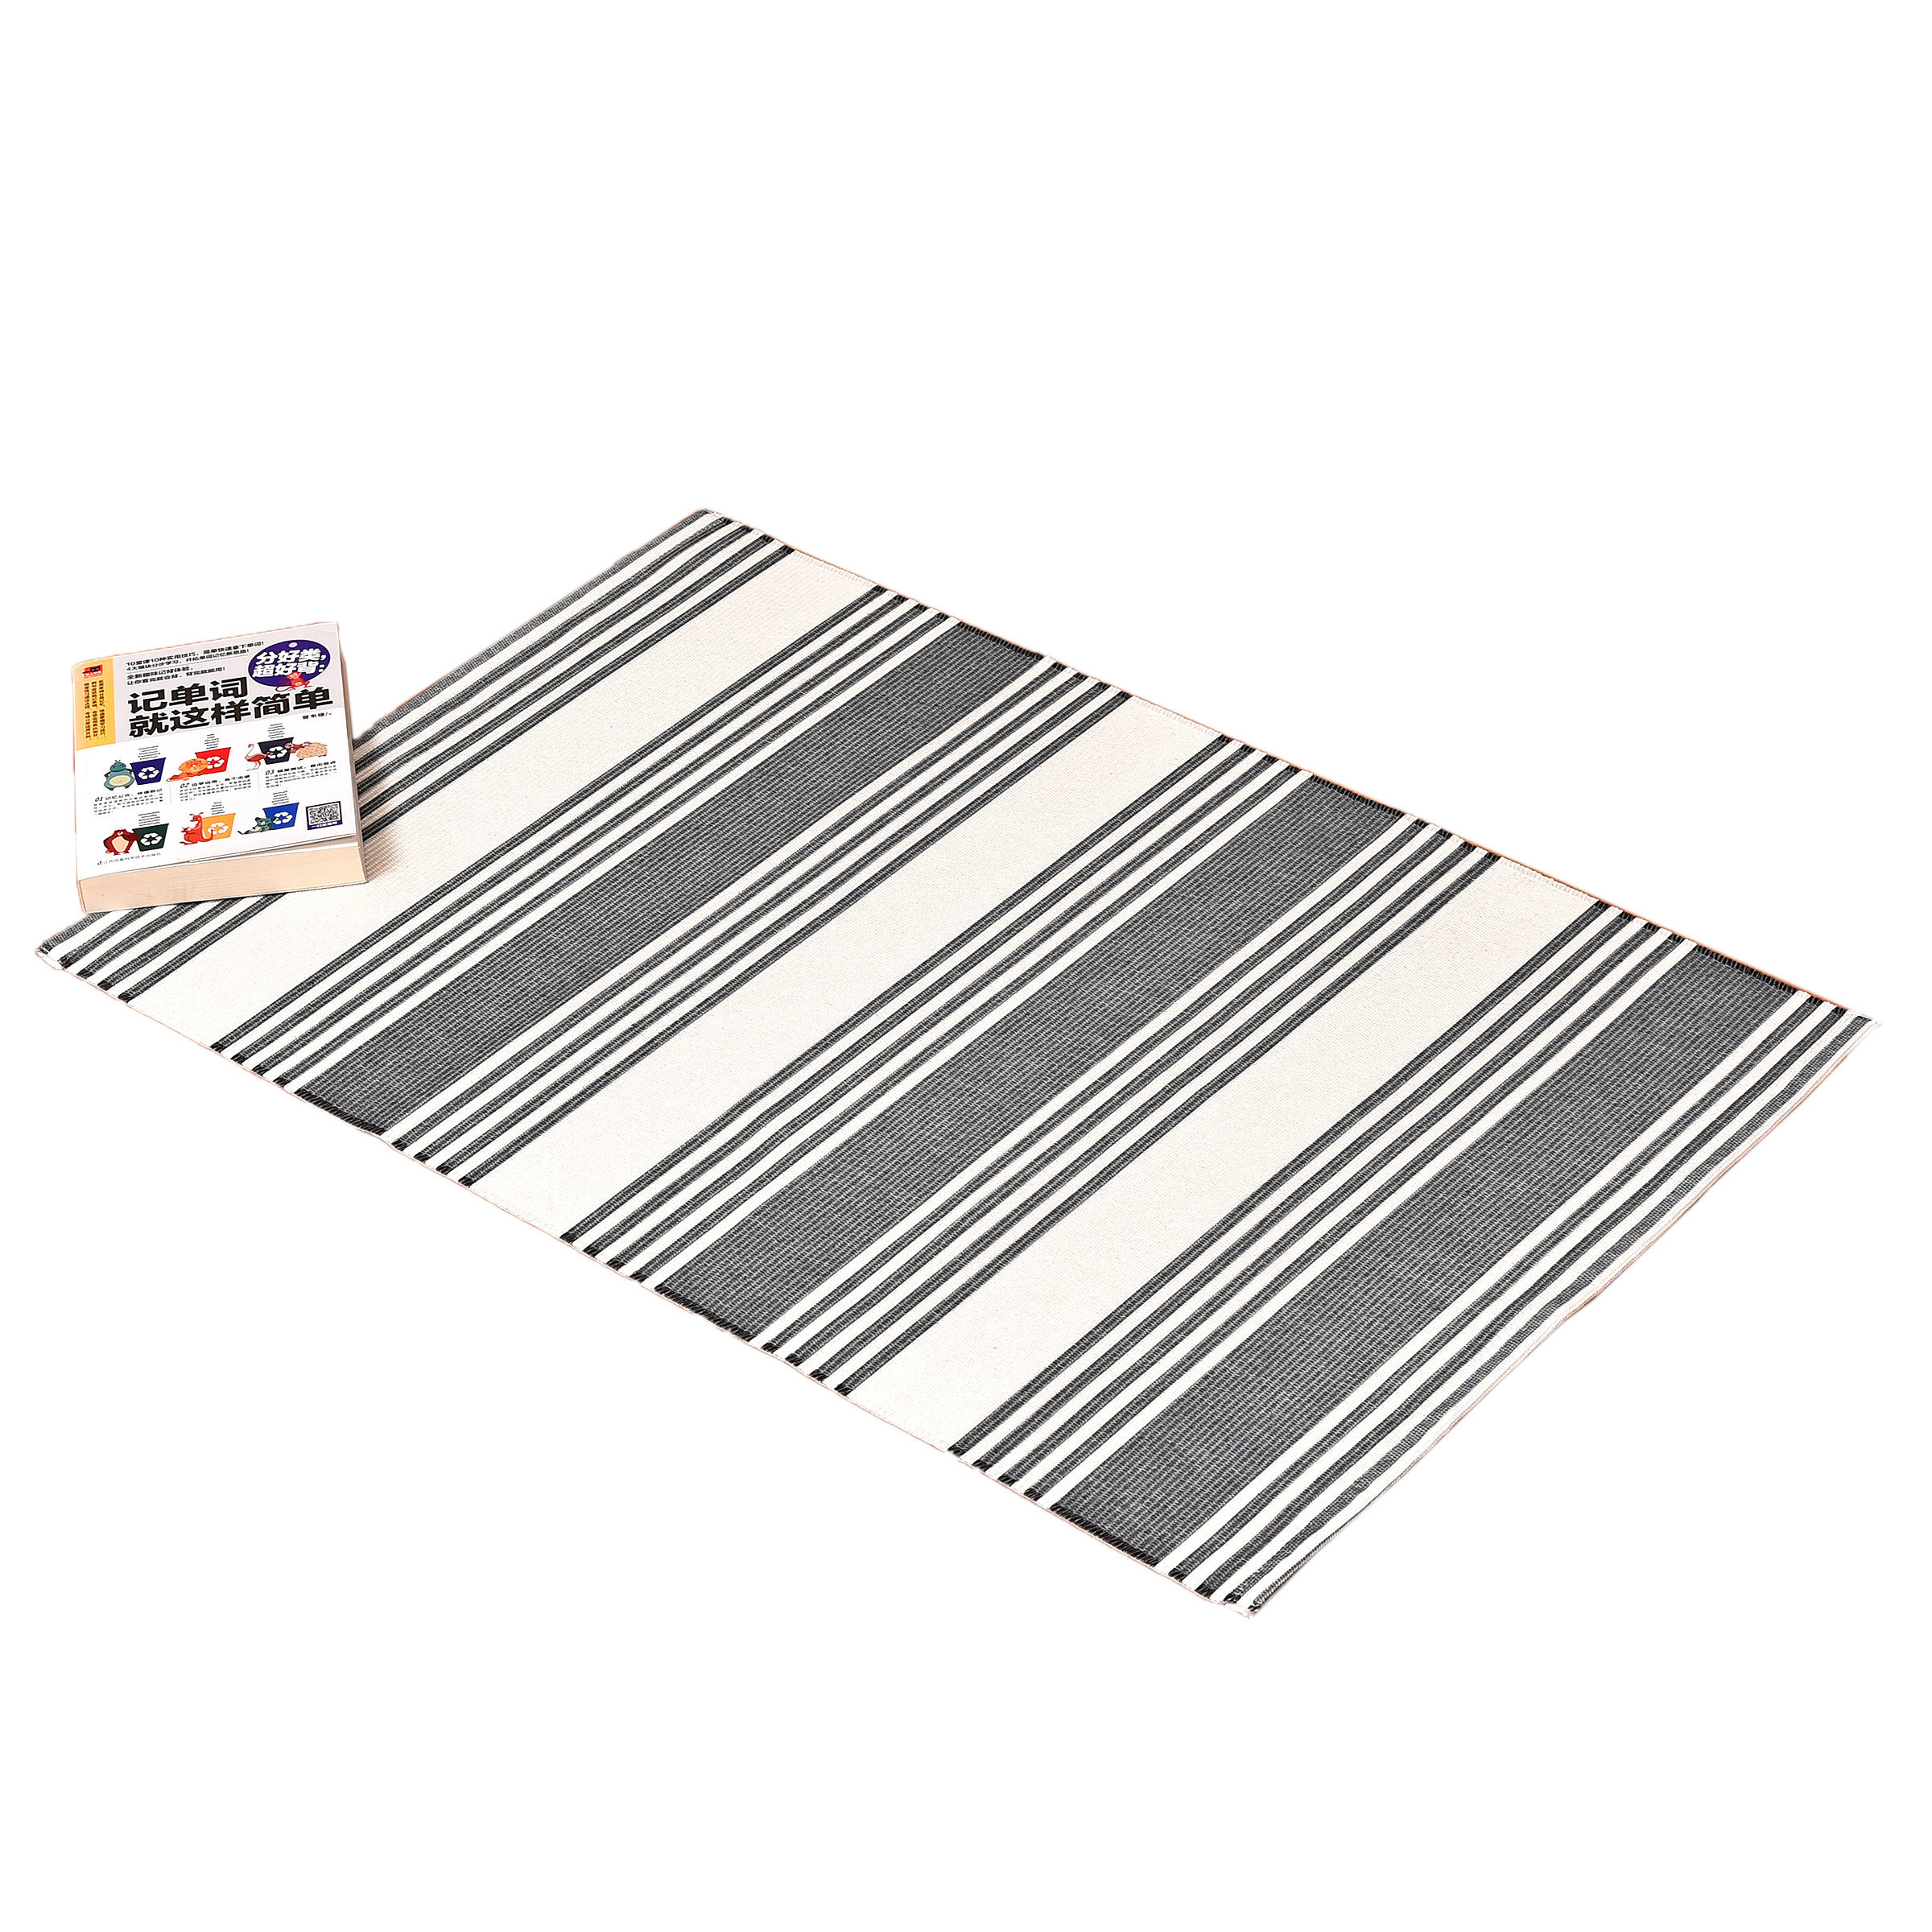 China factory direct washable home textile black and white striped mat design bedroom floor carpet and rug area rugs non-slip